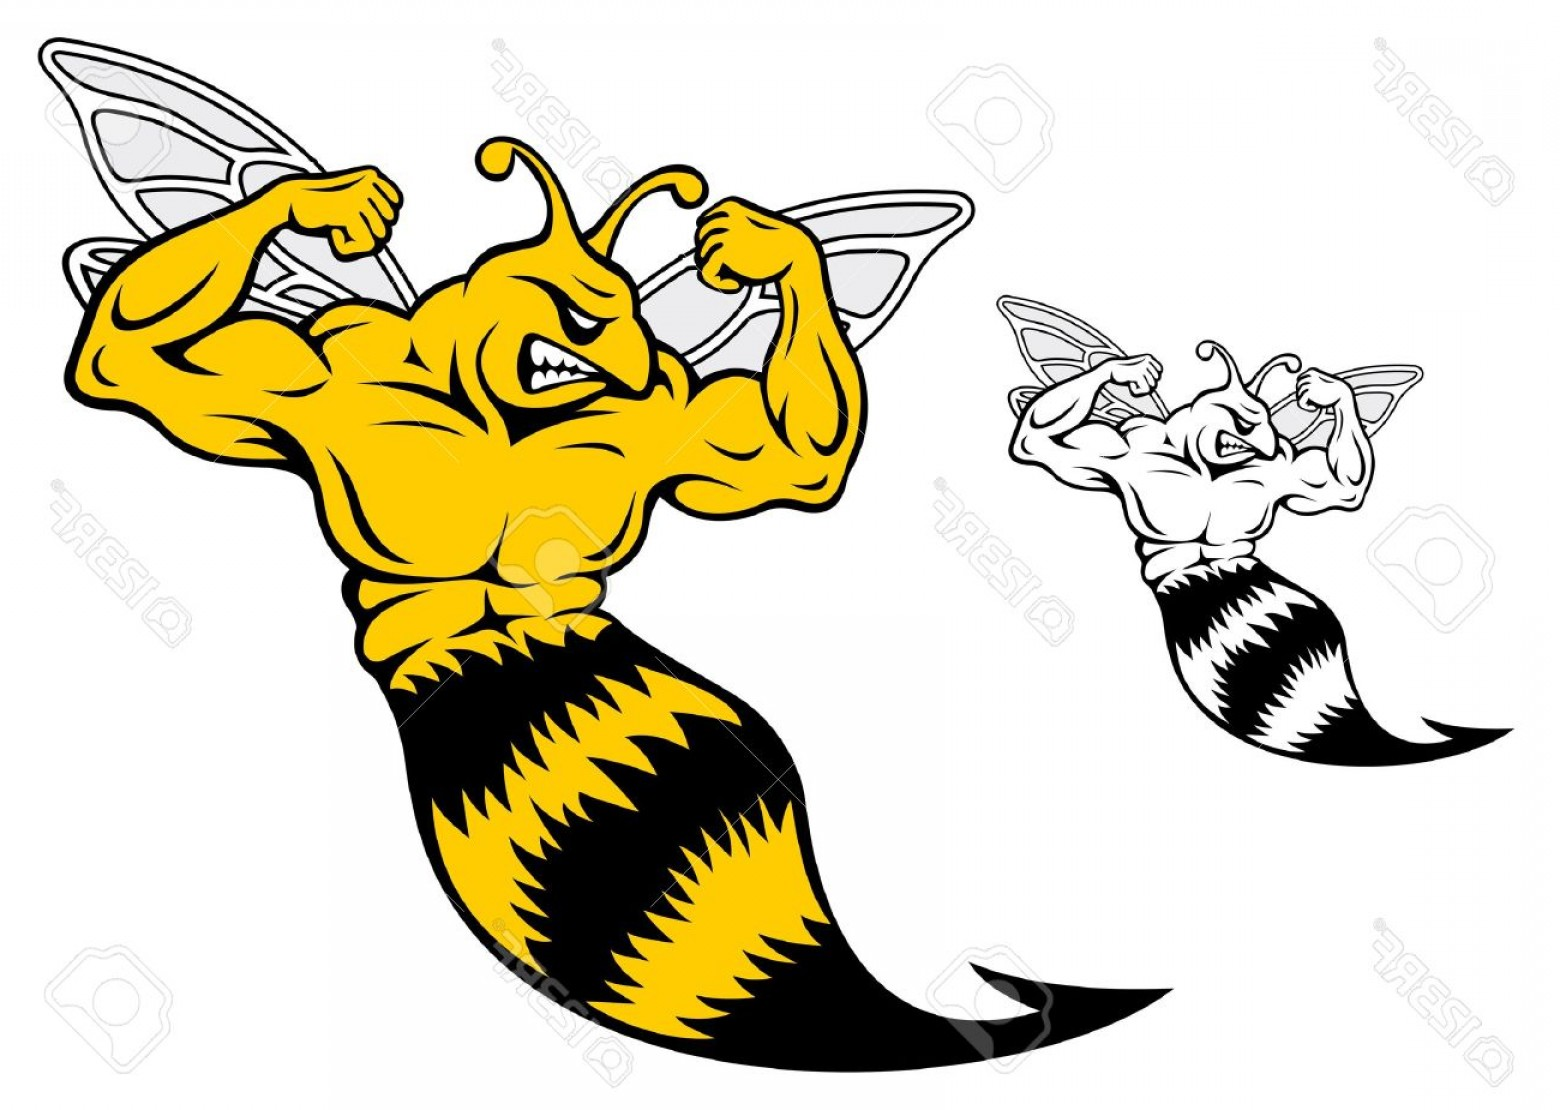 Yellow Jacket Vector Art: Photodanger Yellow Jacket With Muscles For Mascot Design